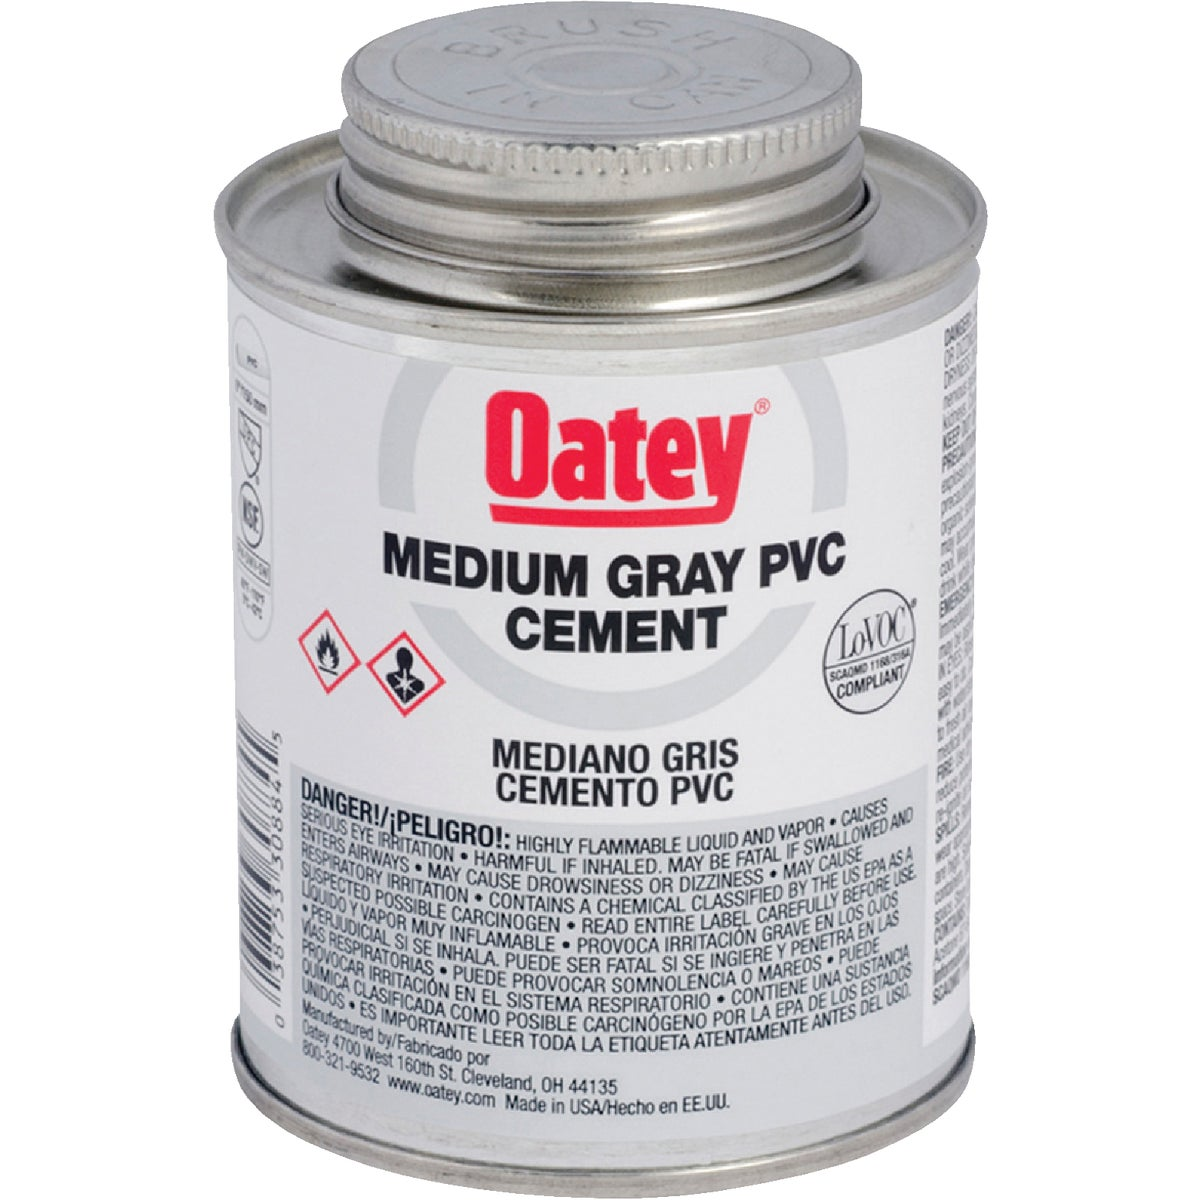 QT GRAY PVC CEMENT - 30886 by Oatey Scs